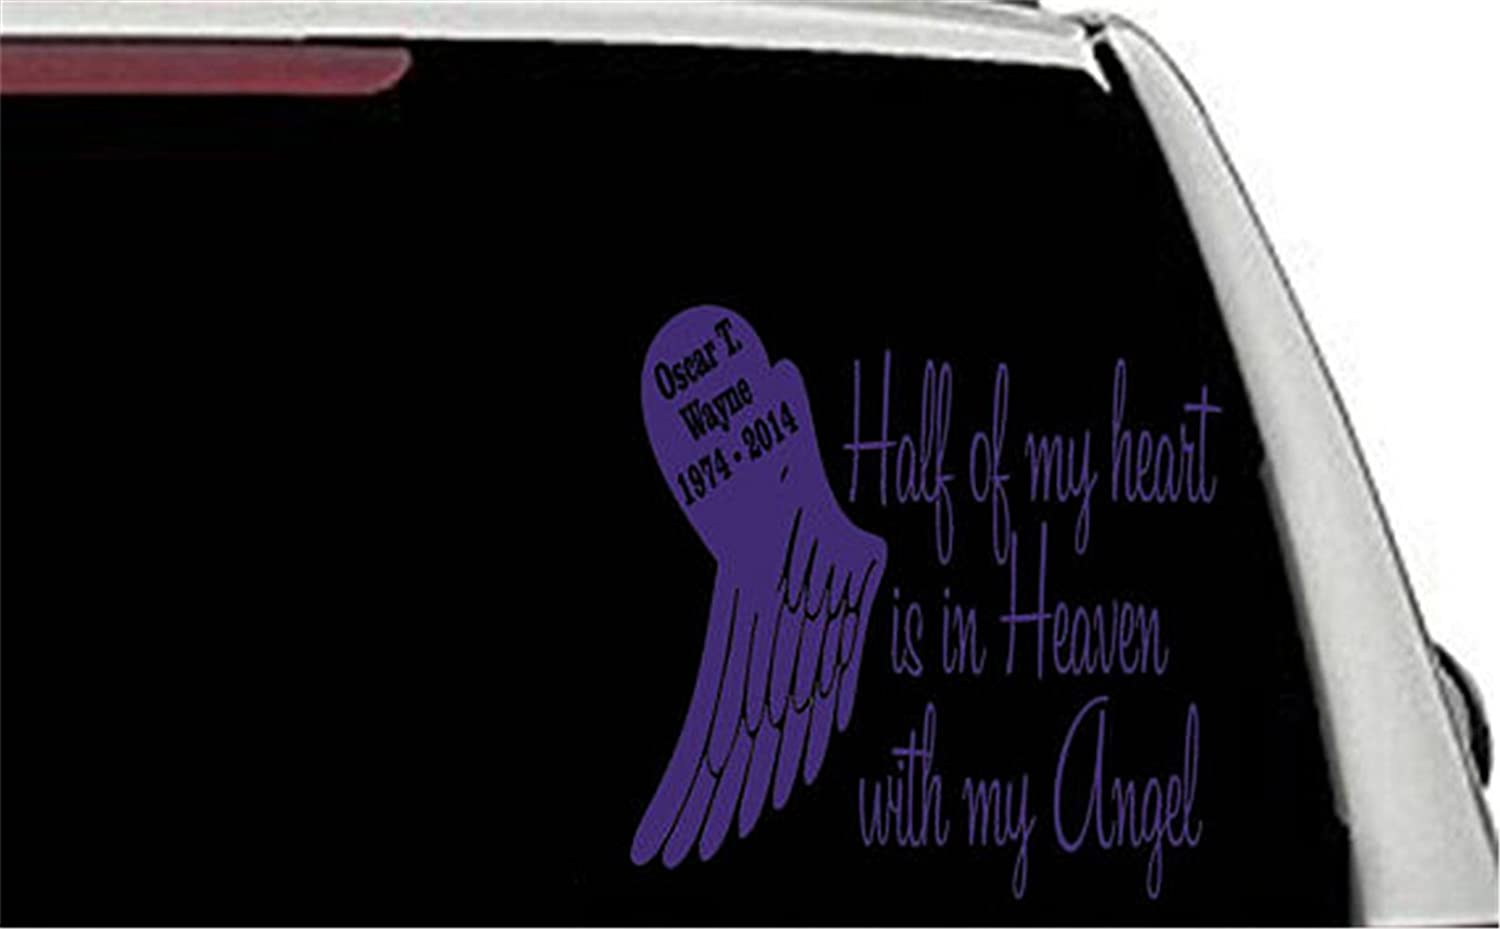 Half my heart my guardian angel memorial car decal in loving memory of custom remembering car window decal mem107 inspirational wall decal church